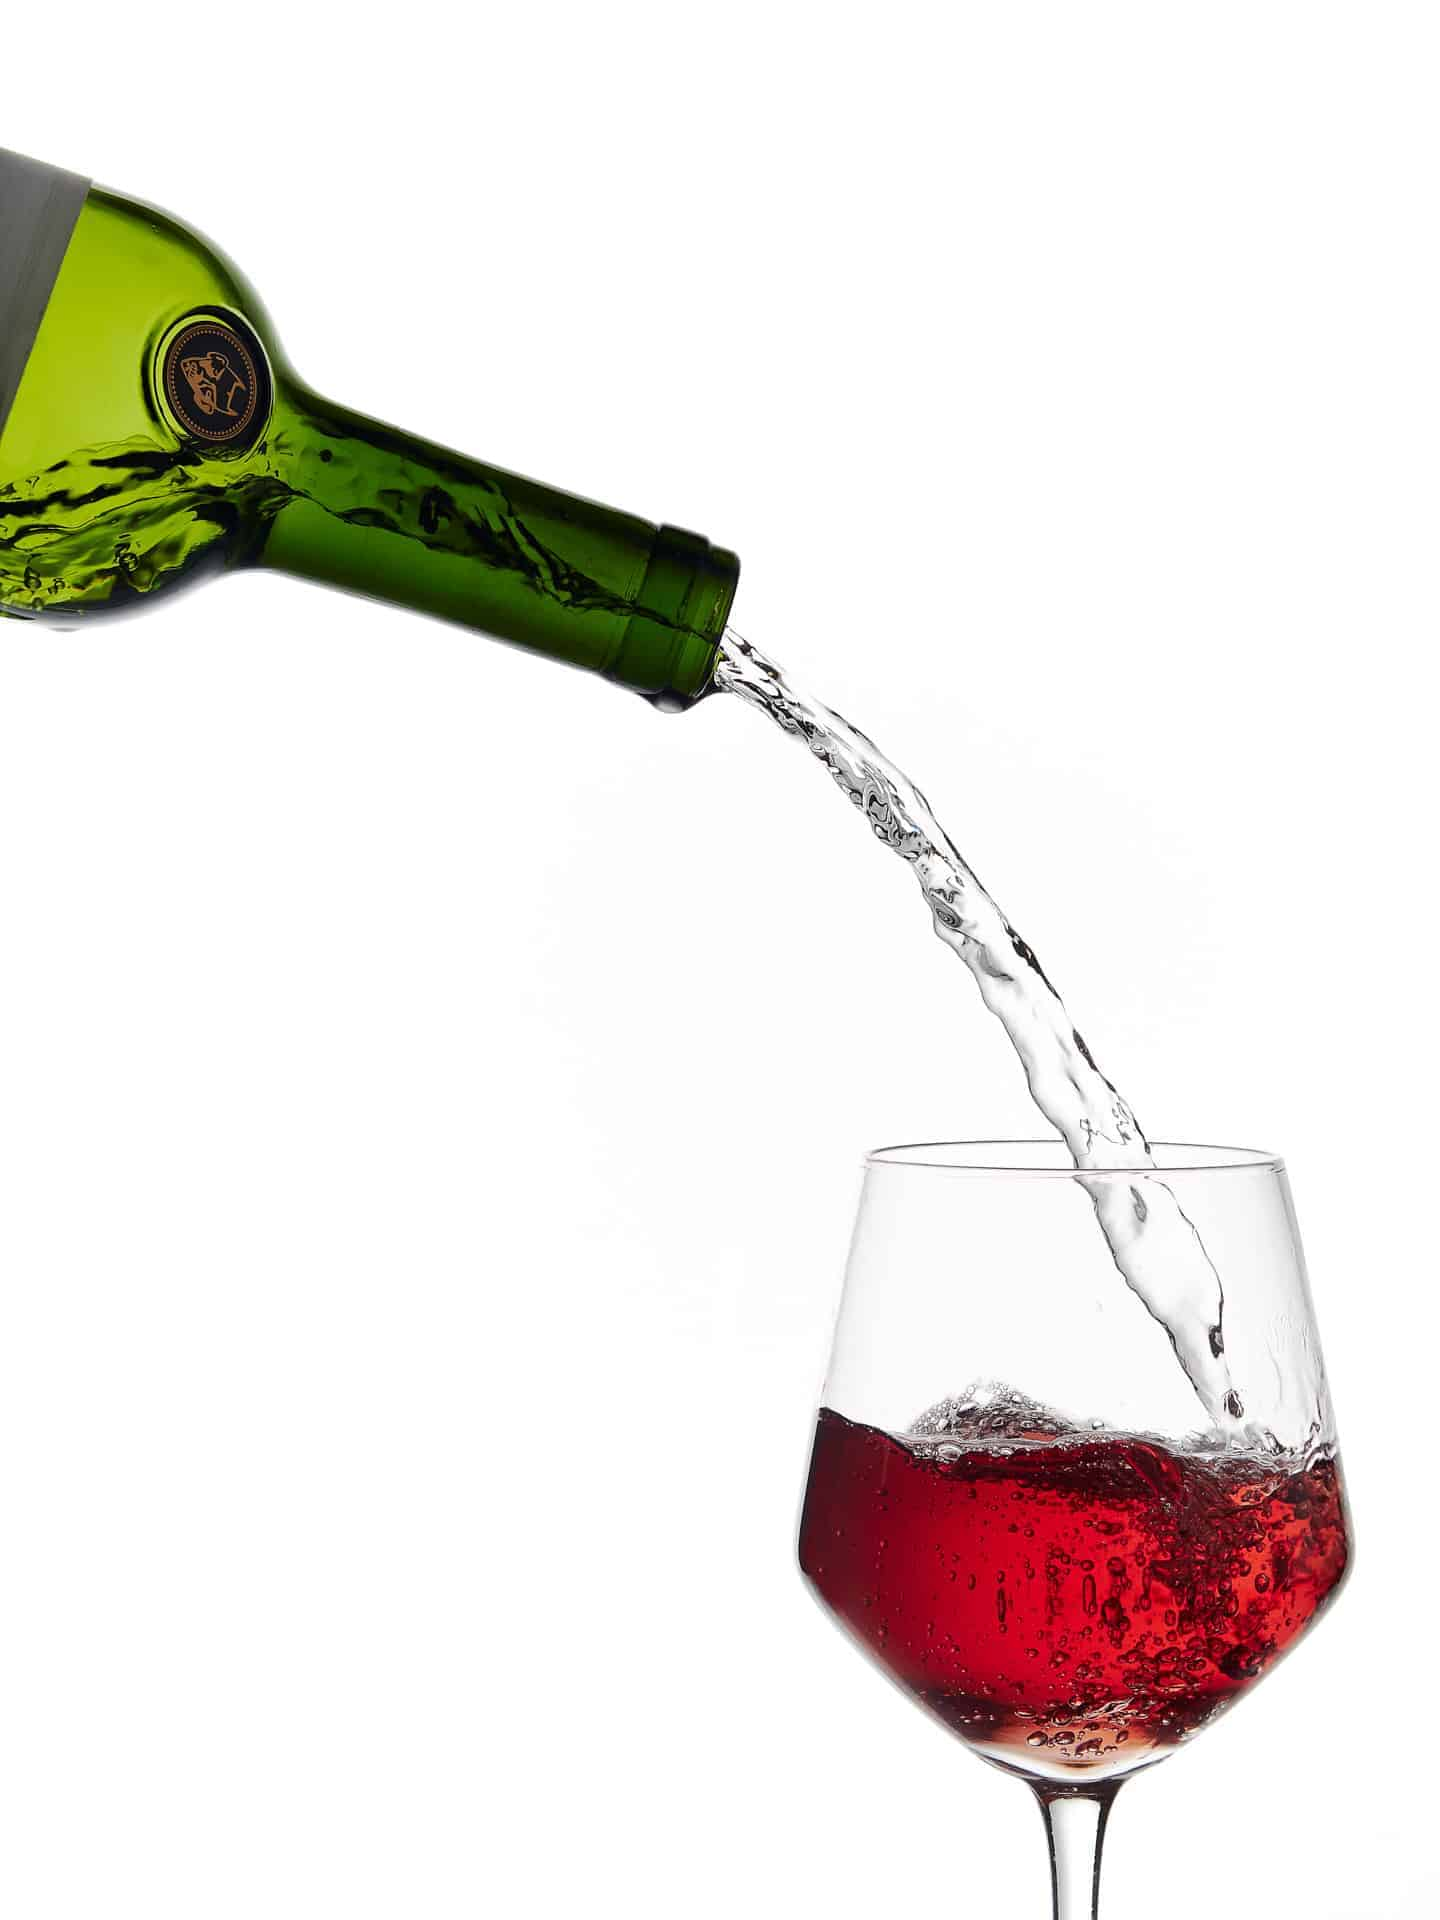 Water poured out of wine bottle into wine glass containing red wine.